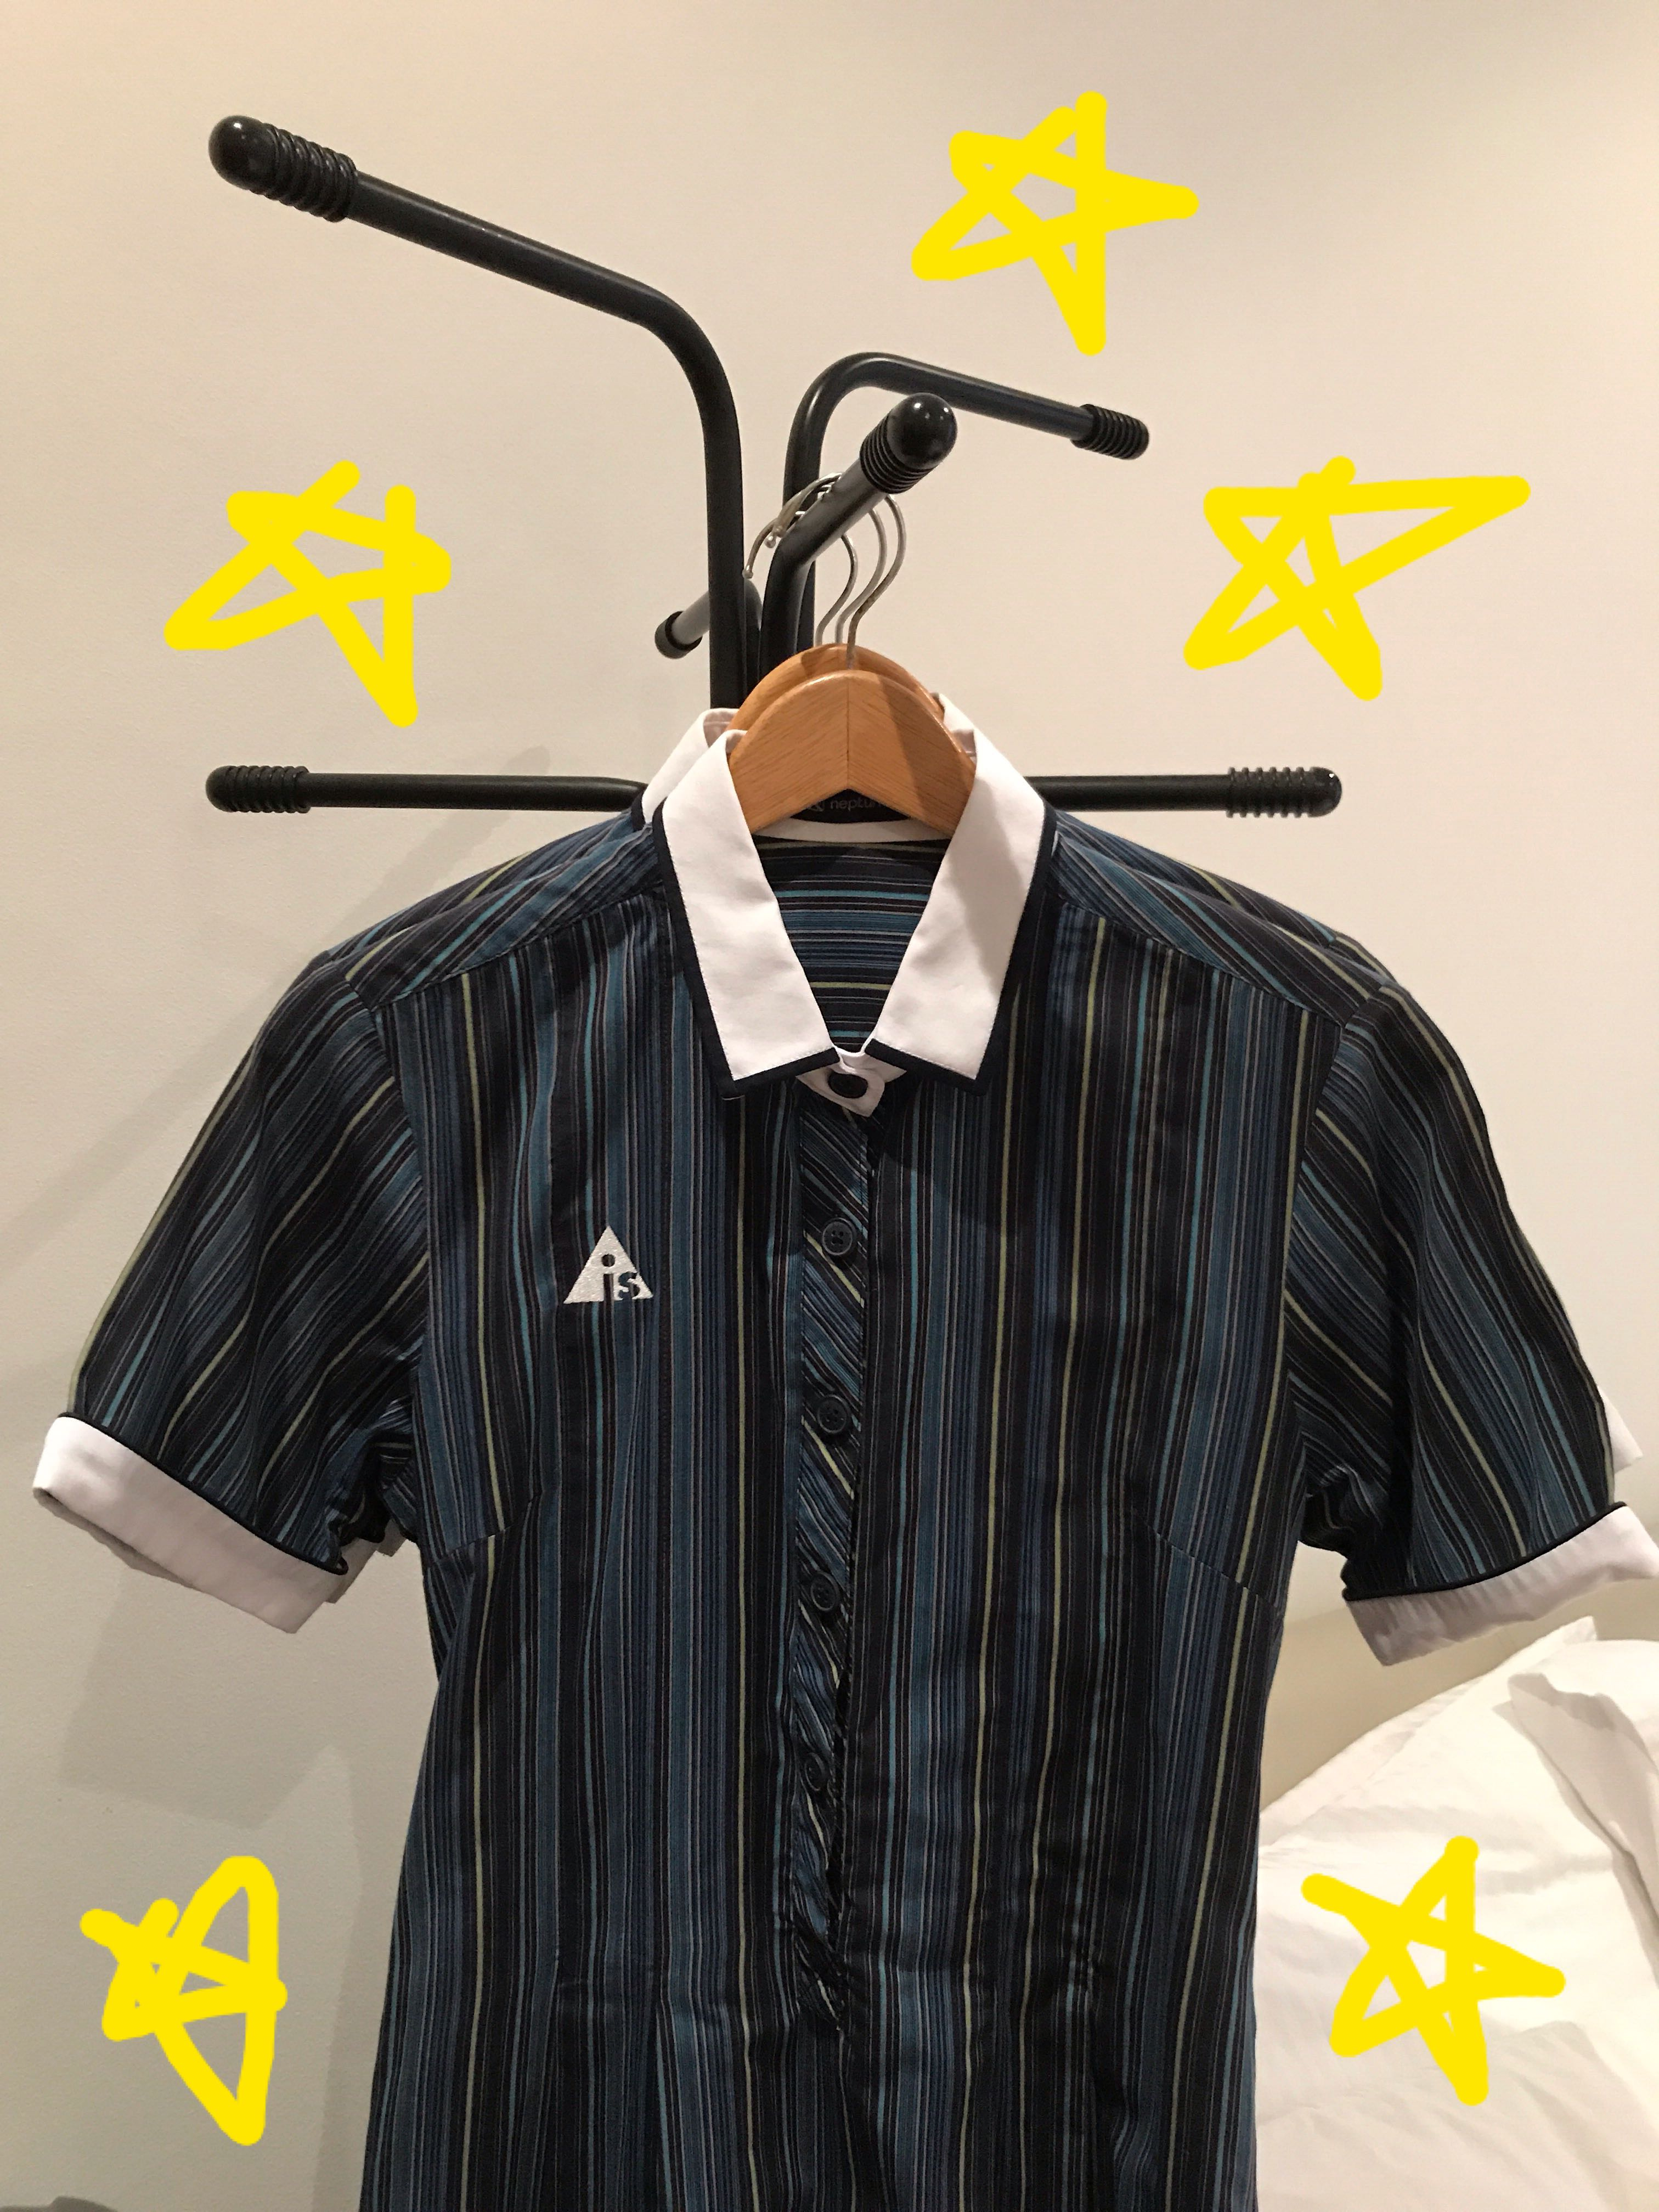 c2e359ee0237f AIS Uniform WORN ONE TERM, Women's Fashion, Clothes, Others on Carousell